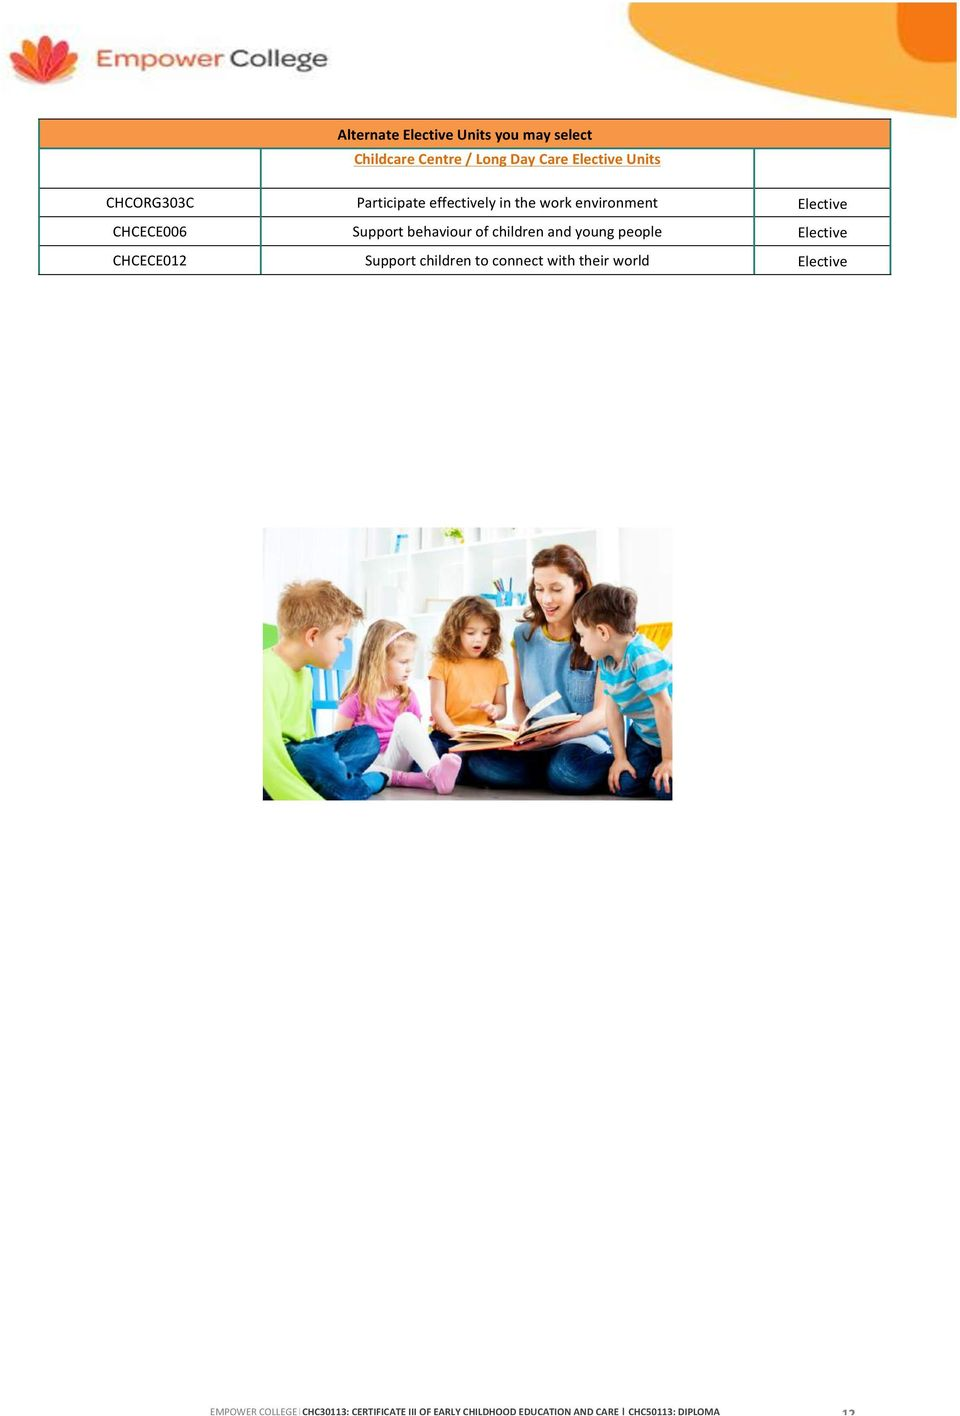 environment Elective CHCECE006 Support behaviour of children and young